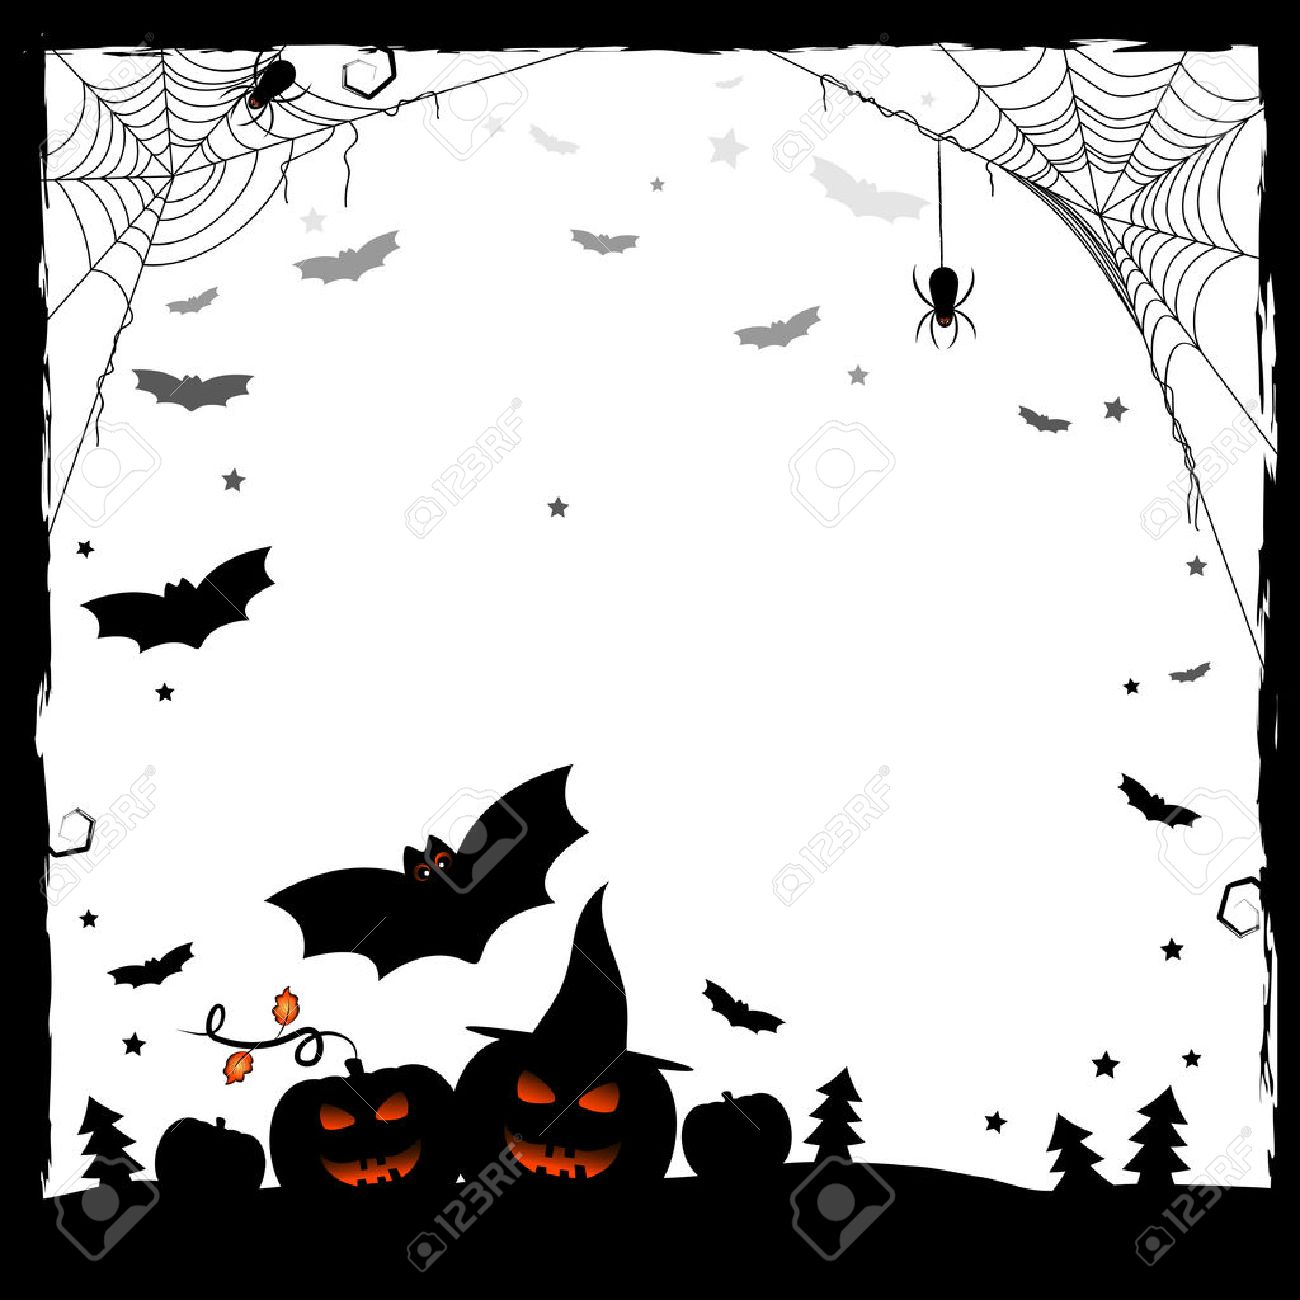 Holiday illustration on theme of Halloween. Black and white frame with pumpkins, spiders on web and bats. Wishes for Happy Halloween. Trick or treat. Vector illustration - 45228730